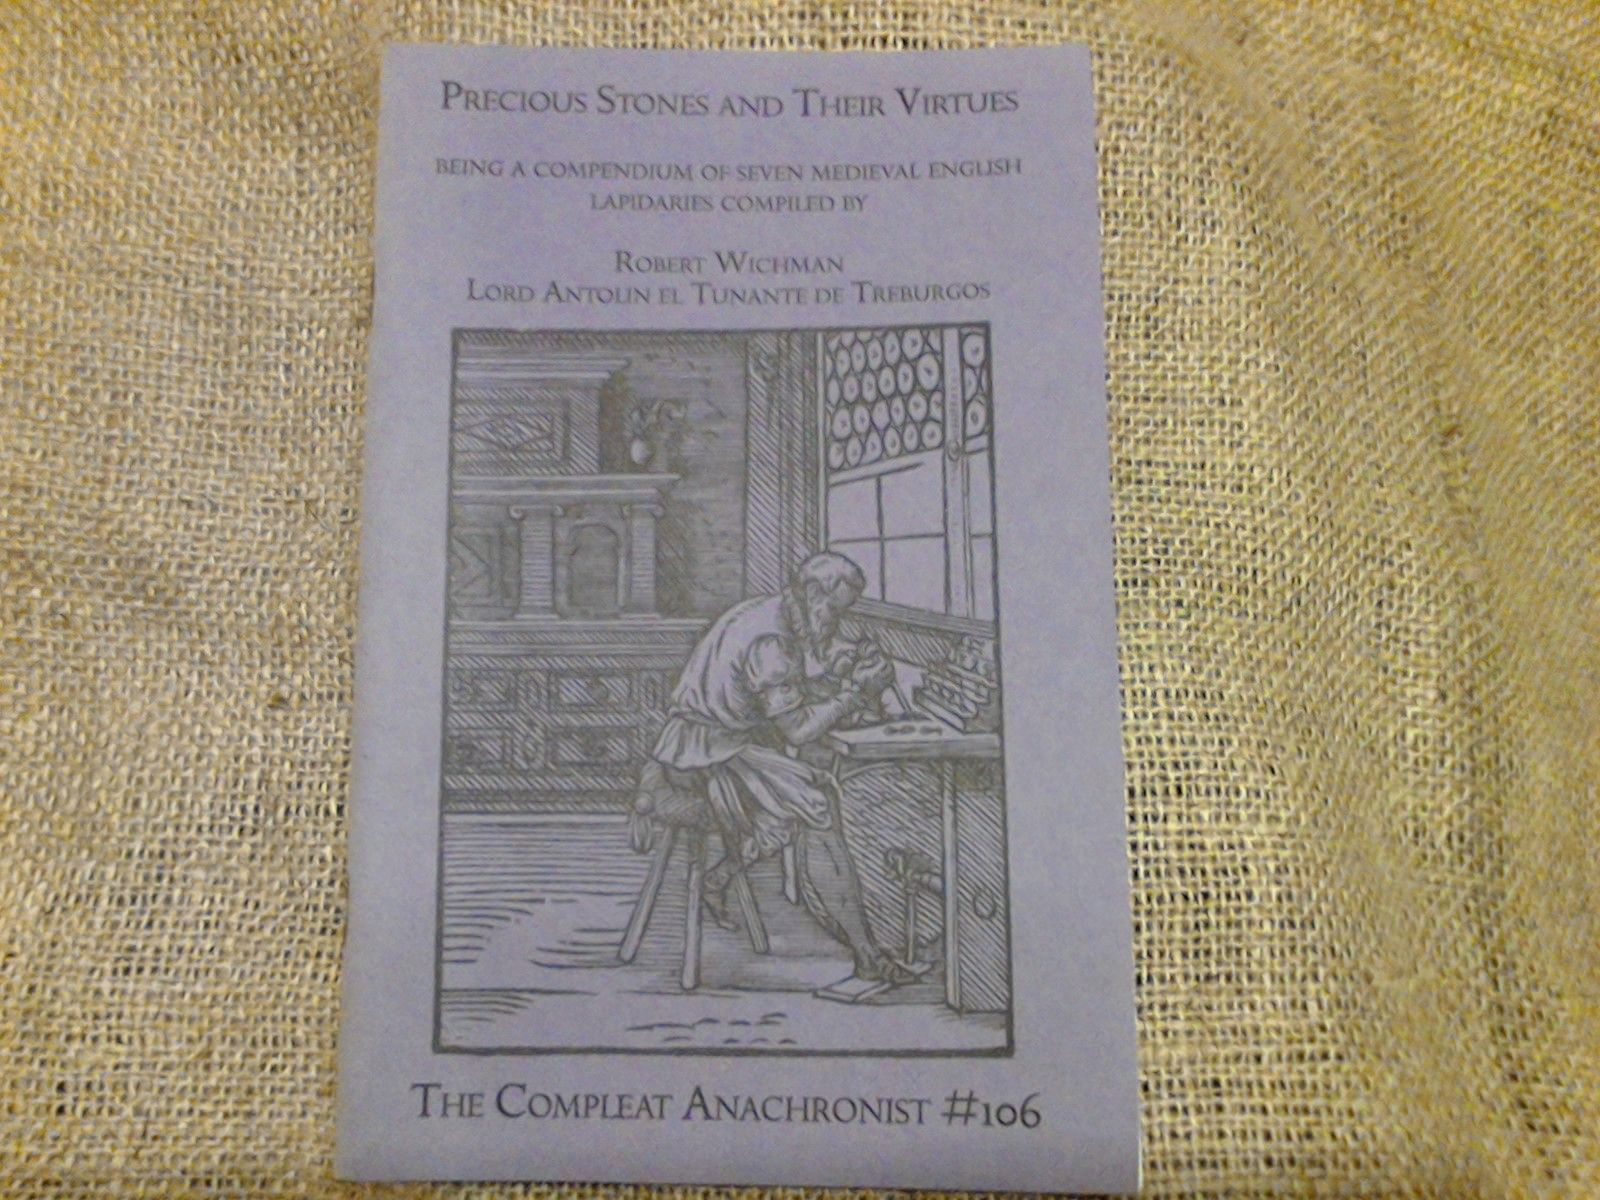 Compleat Anachronist #106 Precious Stones and Their Virtues, Being a Compendium of Seven Medieval English Lapidaries Compiled by Robert Wichman, Lord Antolin el Tutante de Treburgos. $6